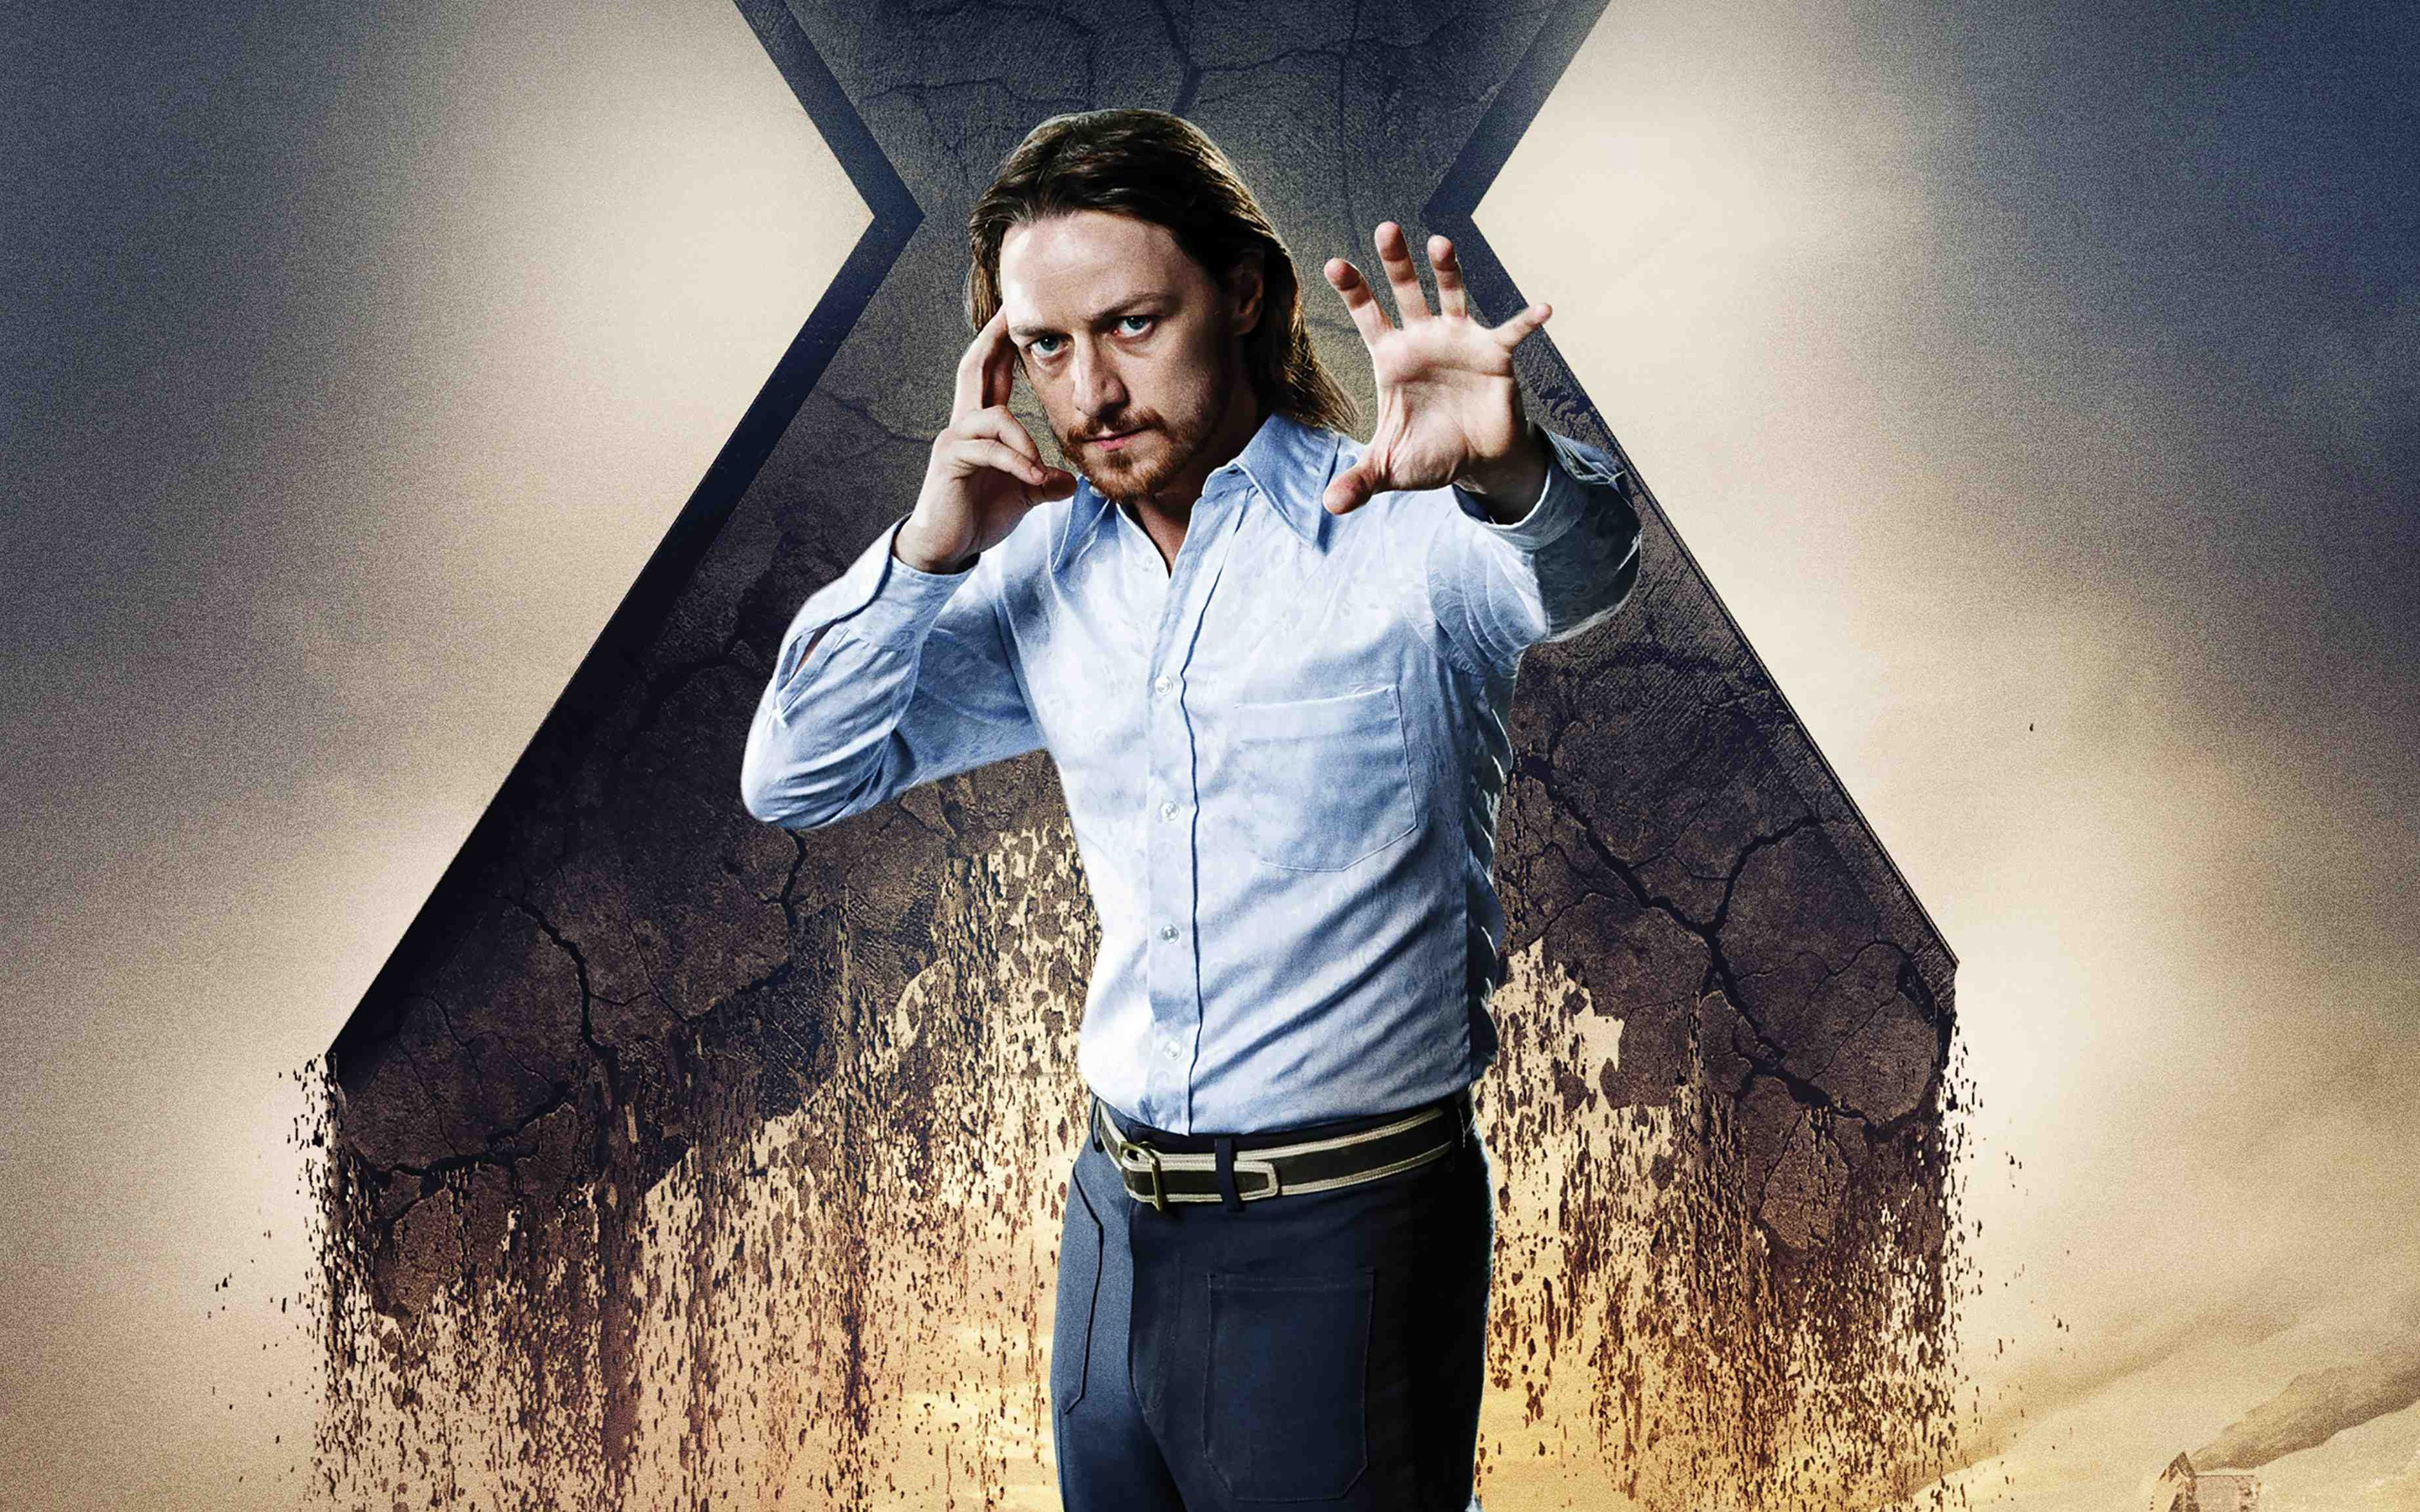 2880x1800 - James McAvoy Wallpapers 11